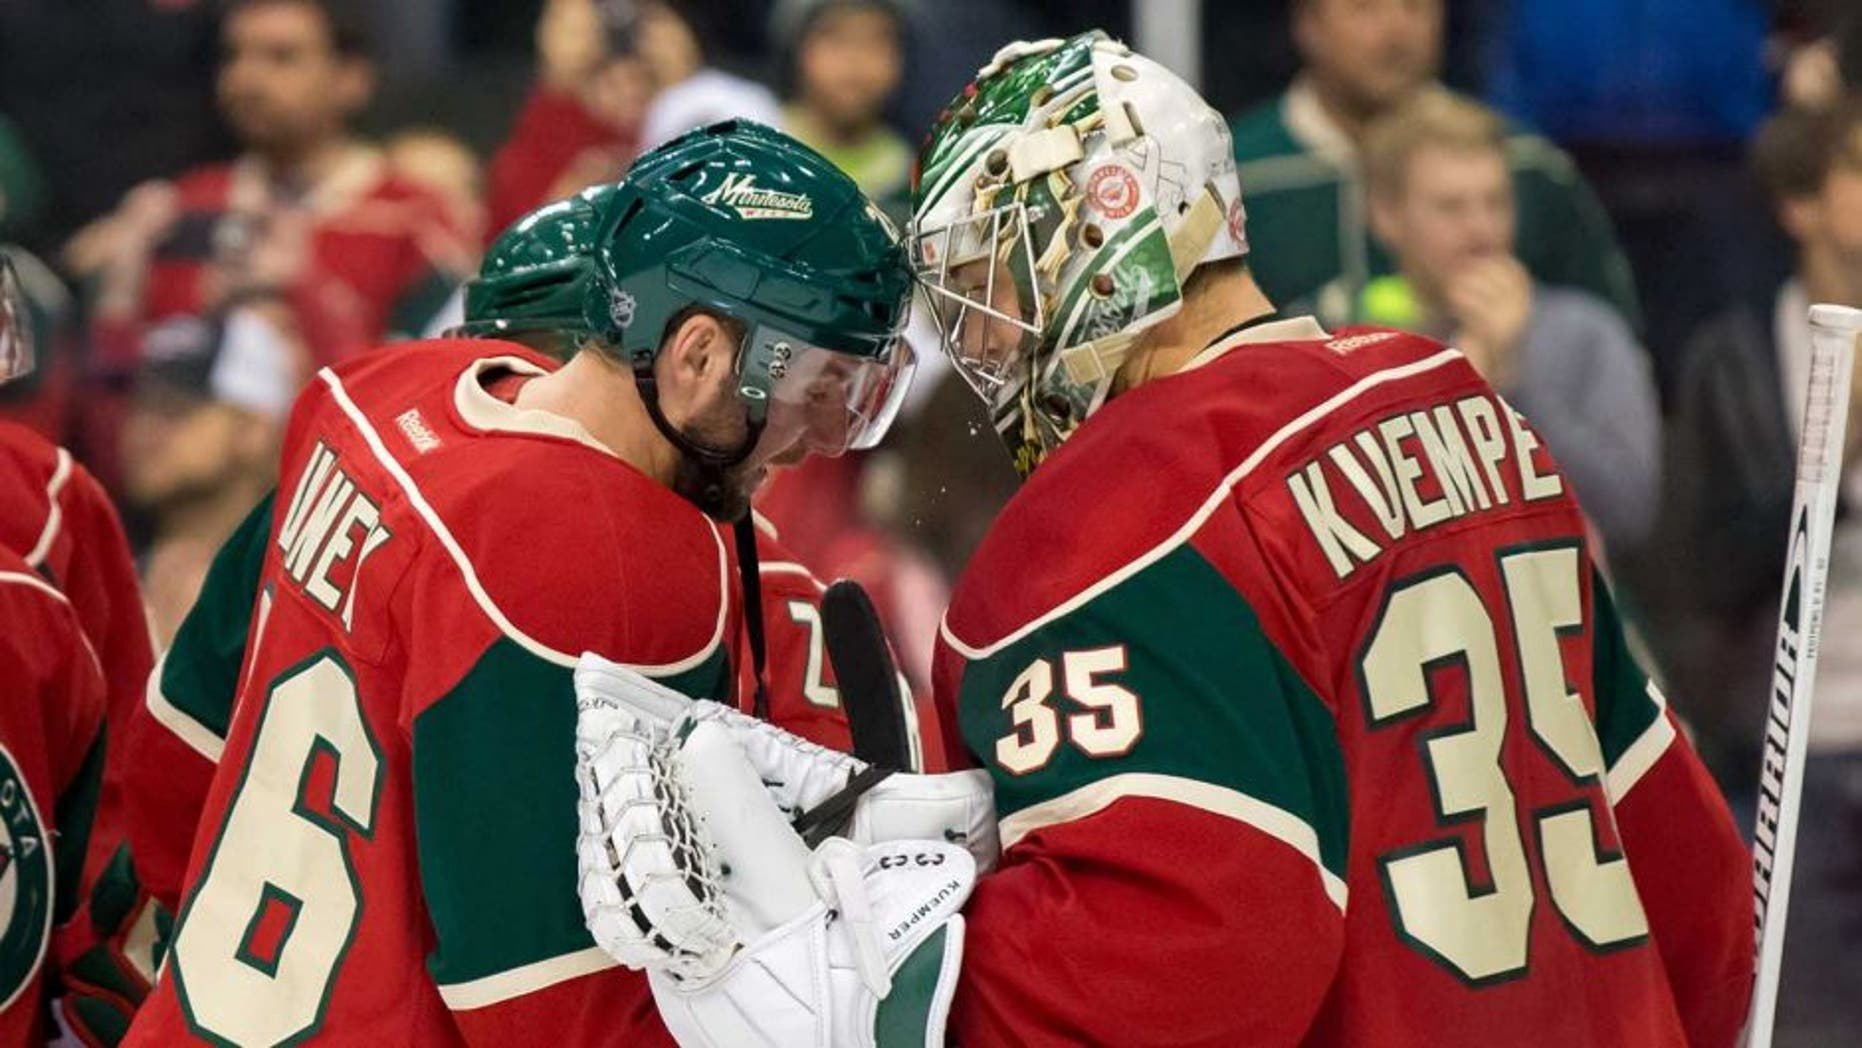 Dec 15, 2015; Saint Paul, MN, USA; Minnesota Wild forward Thomas Vanek (26) and goalie Darcy Kuemper (35) celebrate the win after the game against the Vancouver Canucks at Xcel Energy Center. The Minnesota Wild beat the Vancouver Canucks 6-2. Mandatory Credit: Brad Rempel-USA TODAY Sports